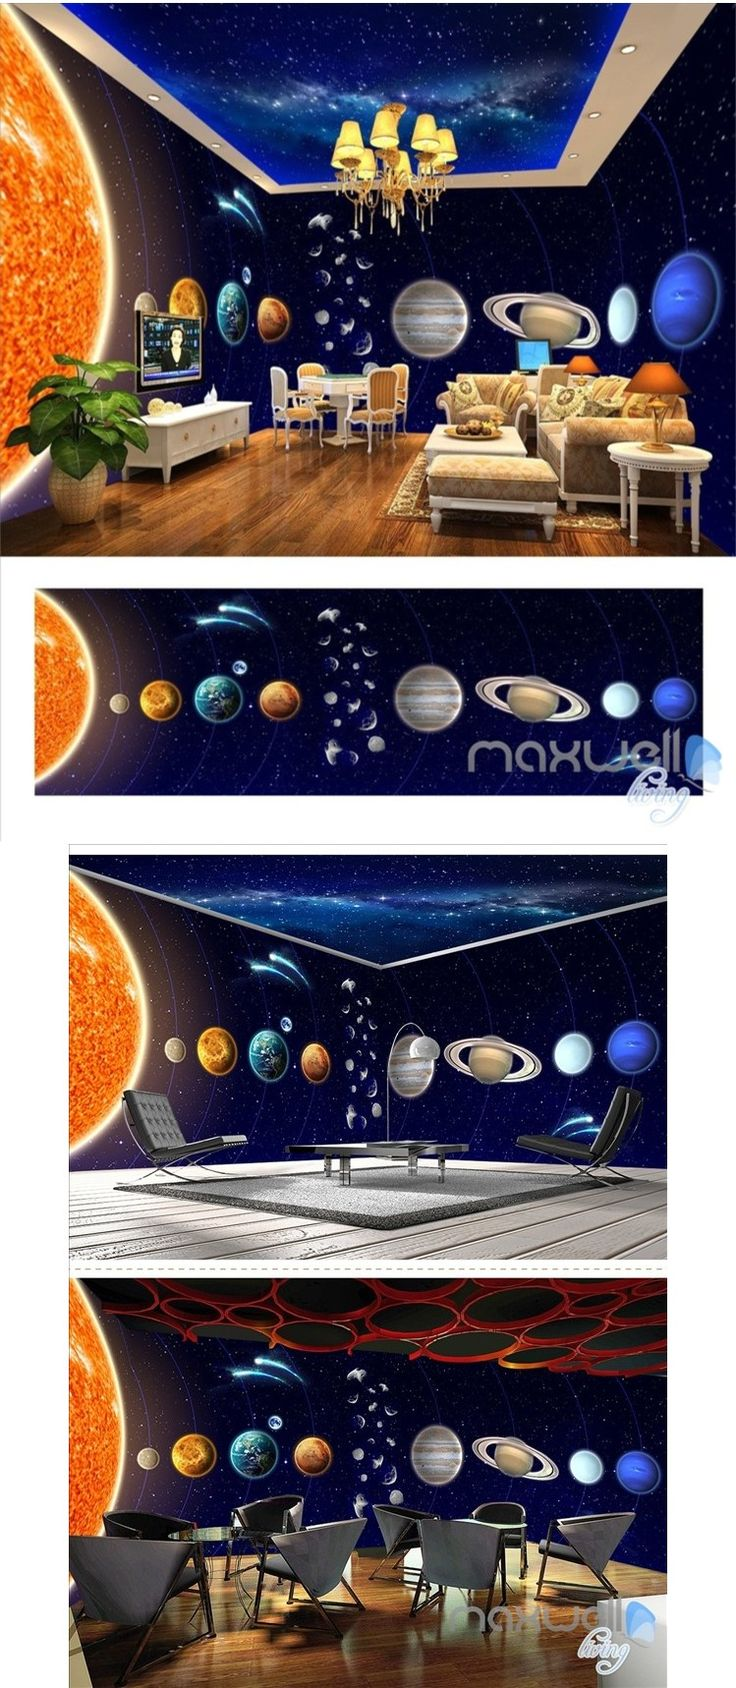 Solar System Bedroom Decor 17 Best Ideas About Solar System Room On Pinterest Space Theme